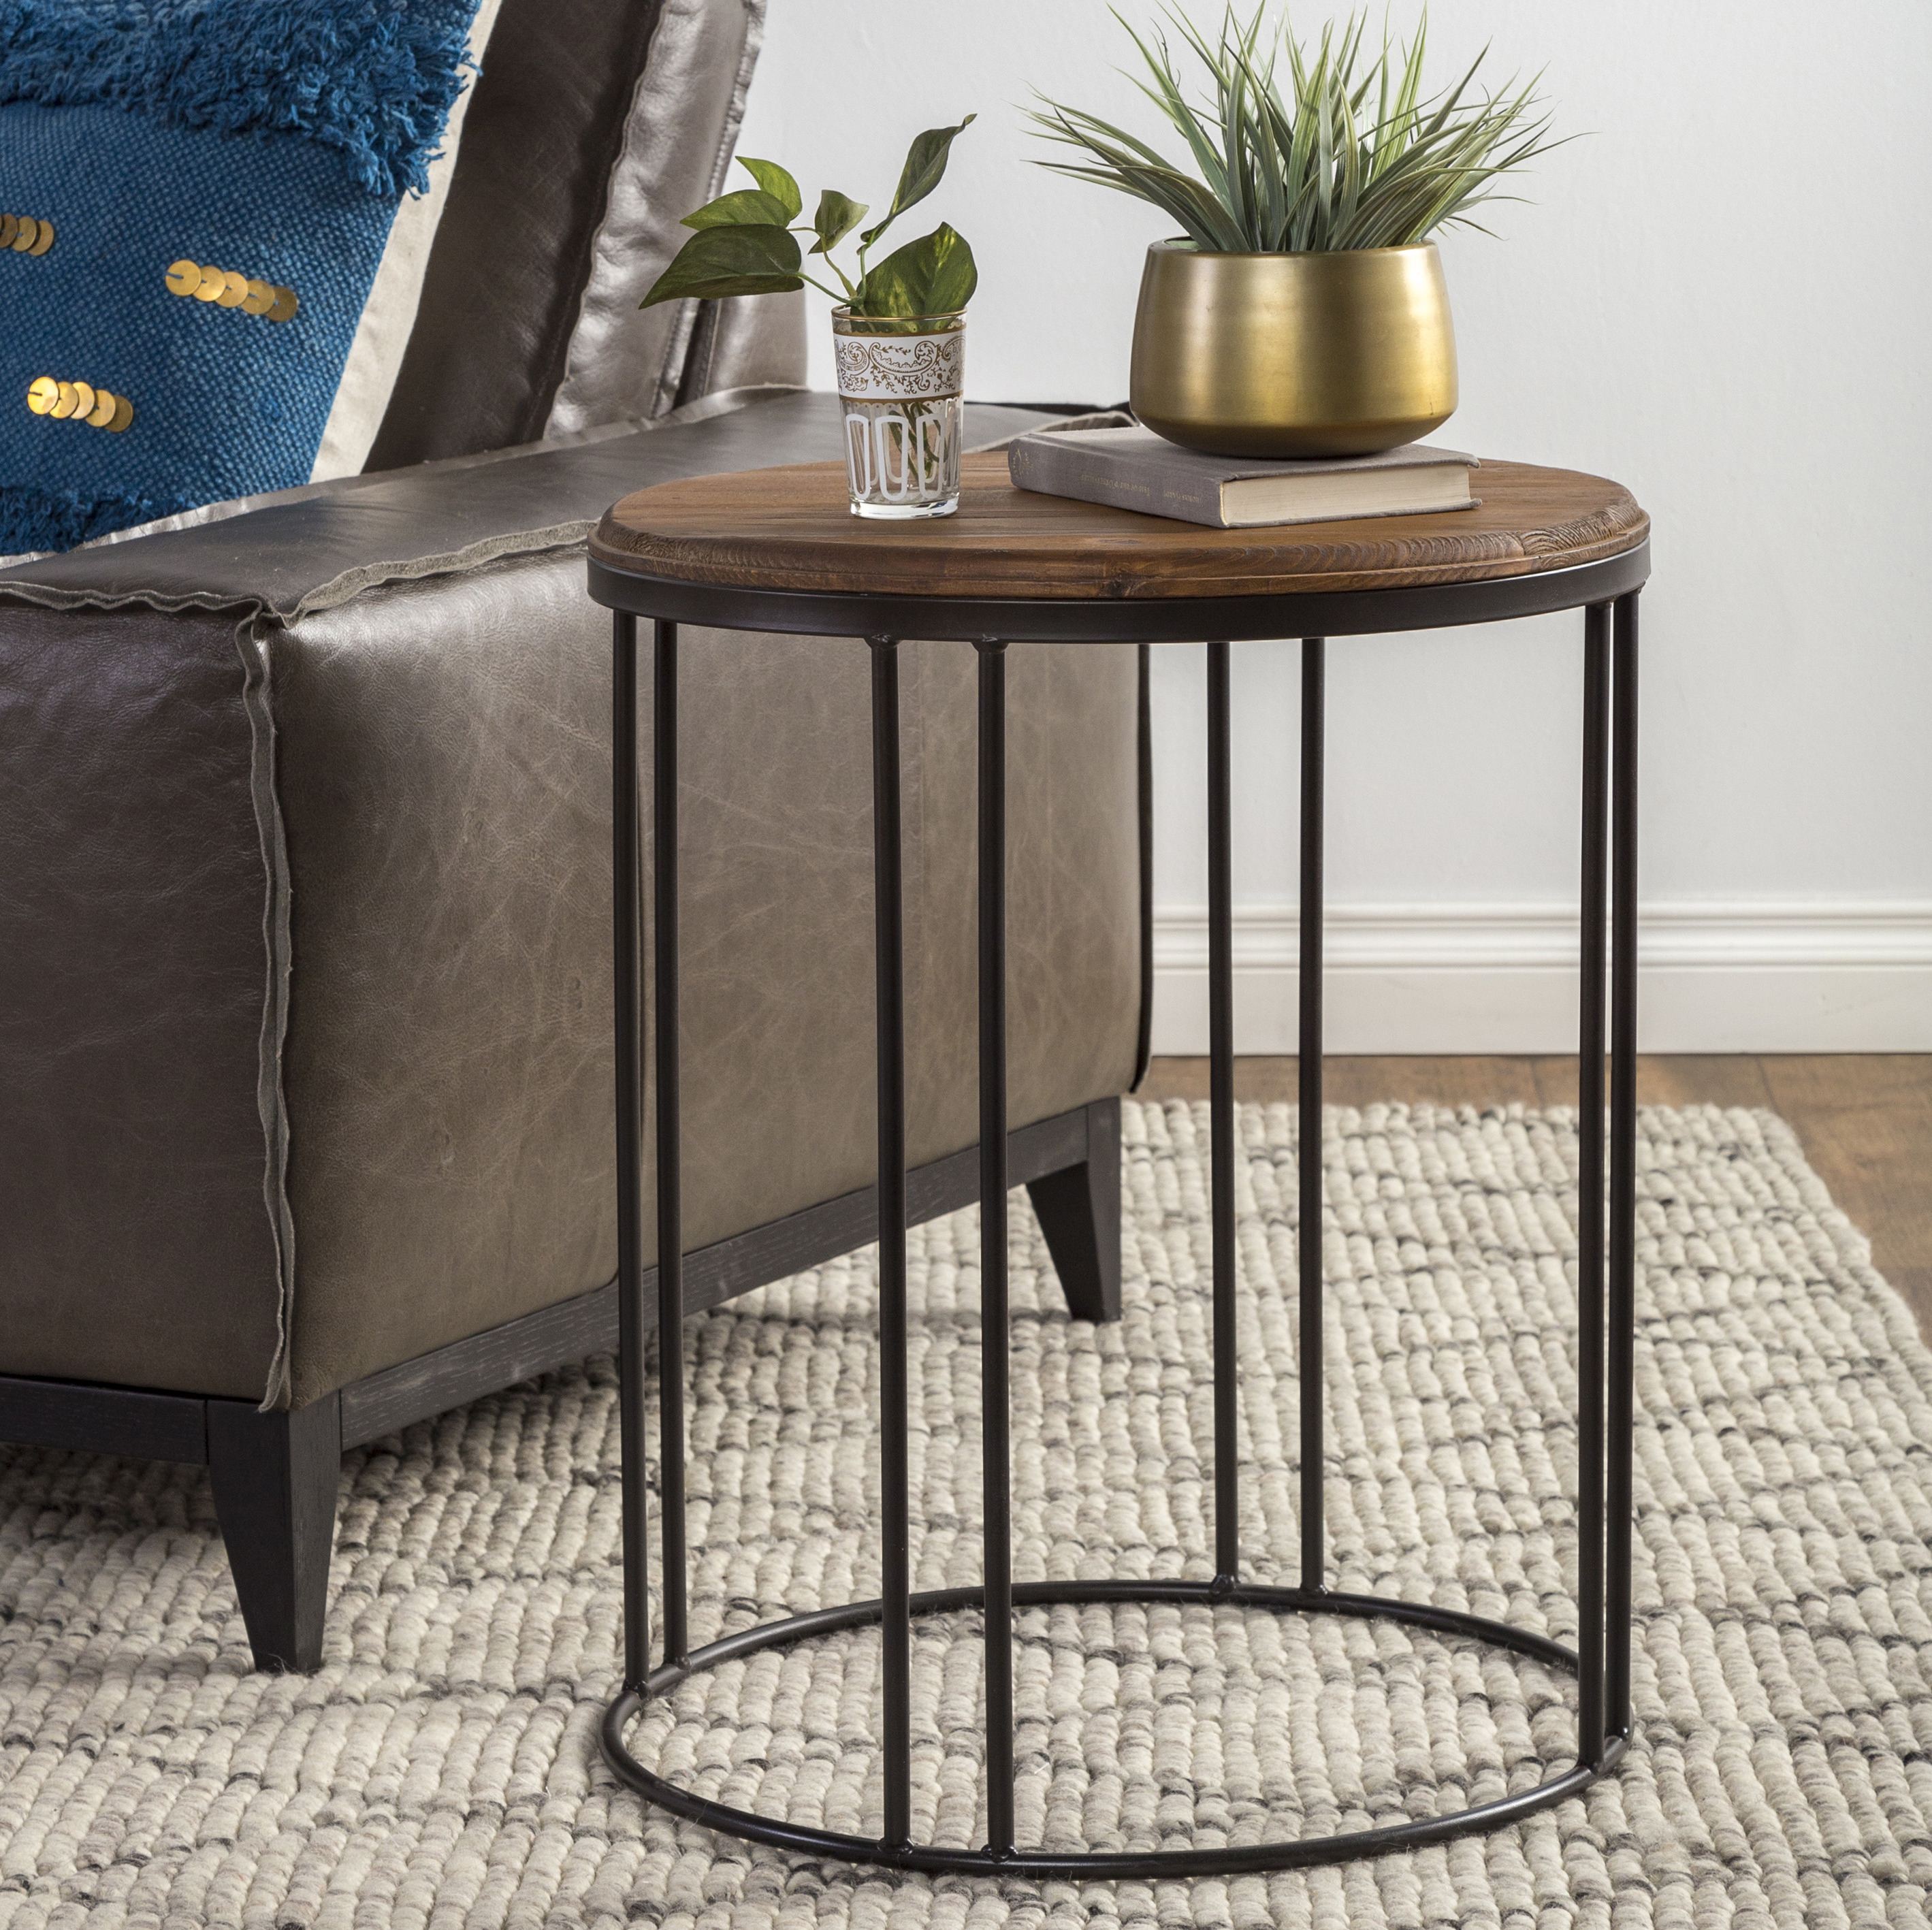 accent tables small you love joss main default name patchen end table side front door entry console with cabinets round vinyl tablecloth garden stool desk custom upholstered